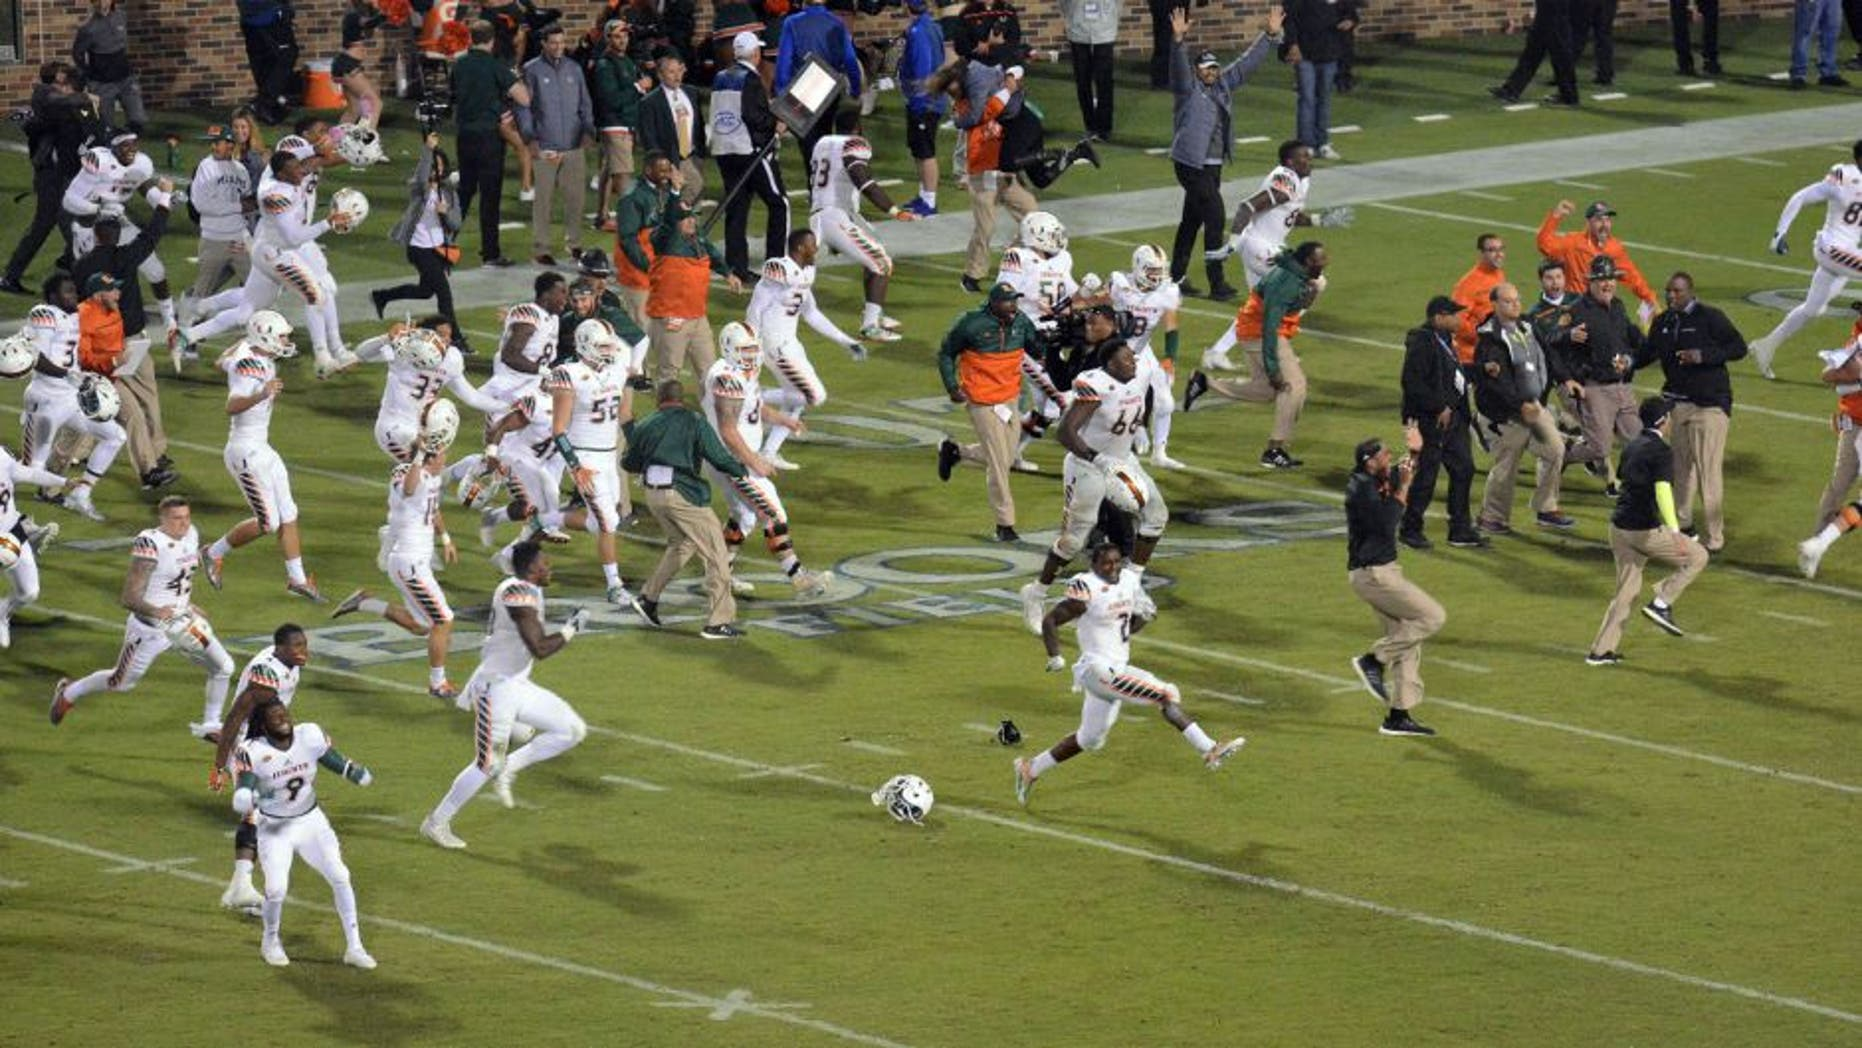 Miami players run onto the field to celebrate their 30-27 win over Duke in the final seconds of an NCAA college football game in Durham, N. C. (Bernard Thomas/The Herald-Sun via AP)